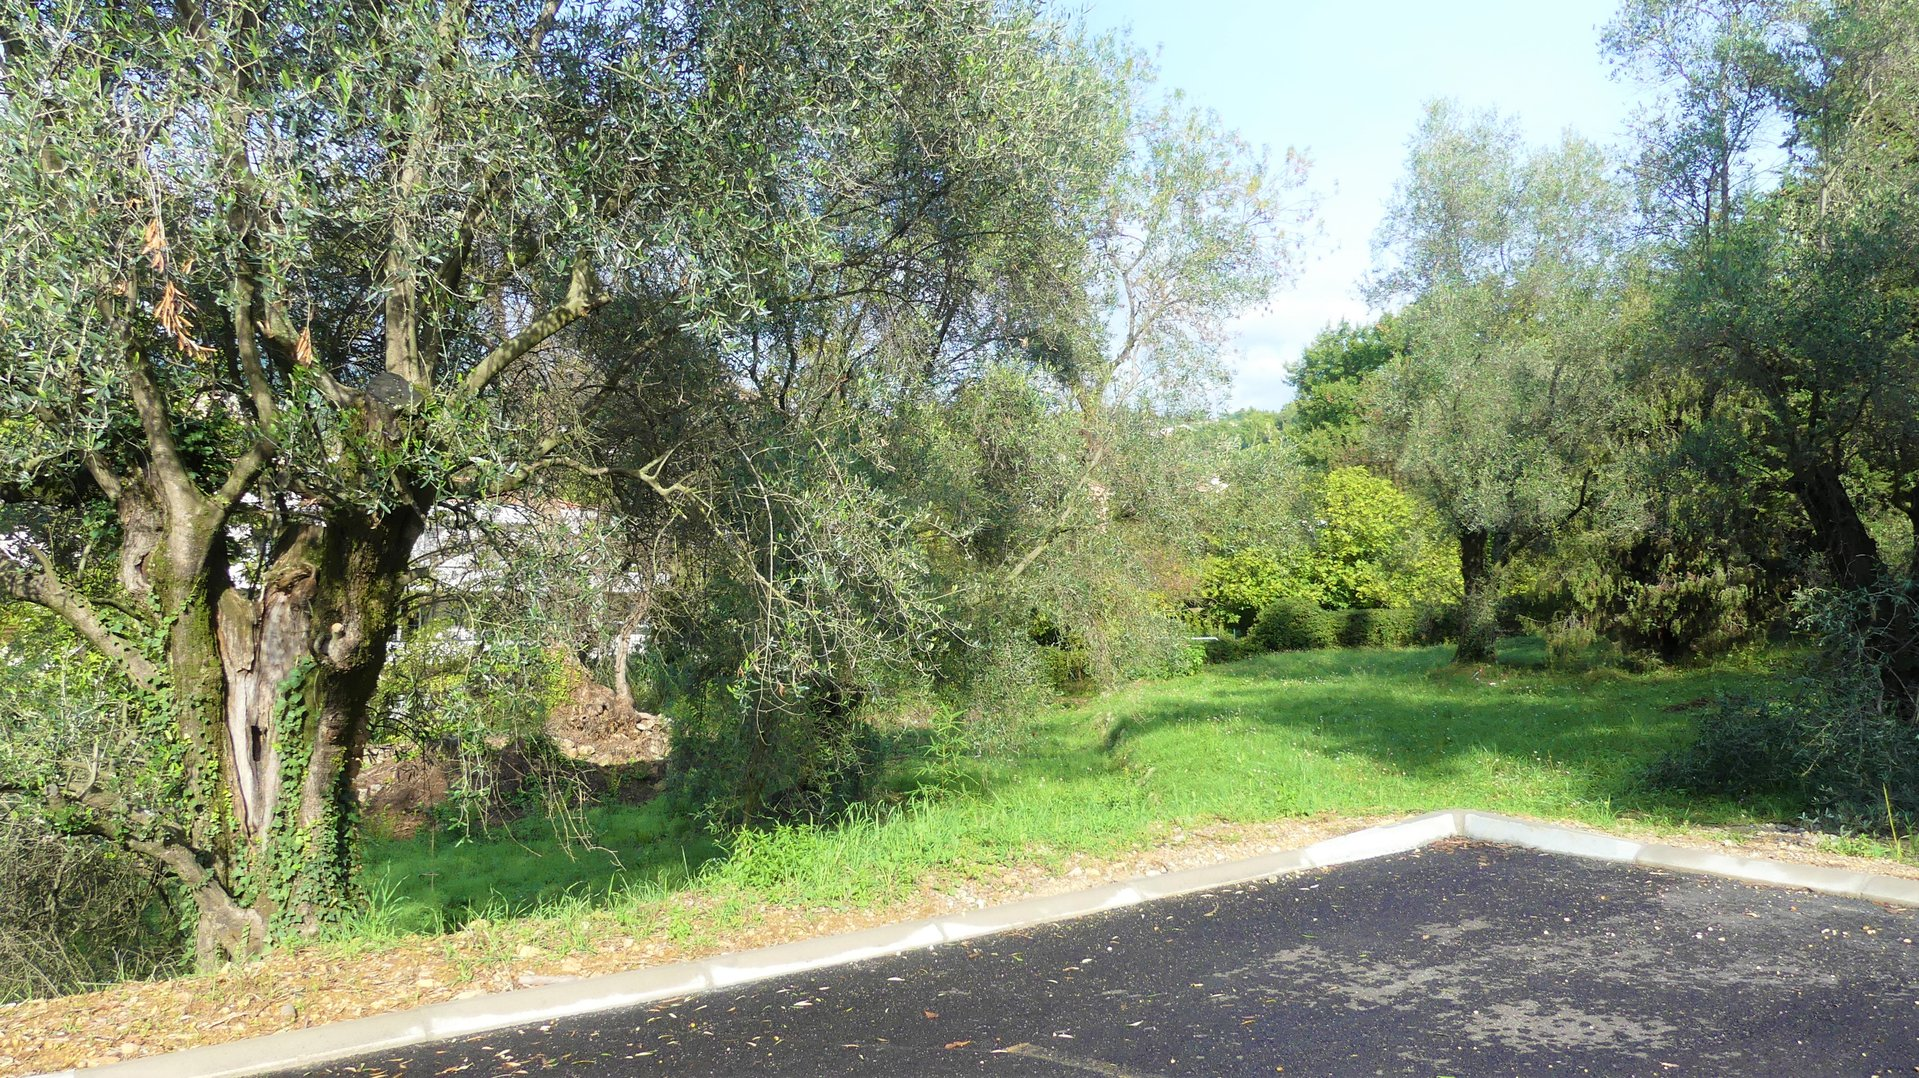 Building plot 1000 m² serviced and quietly